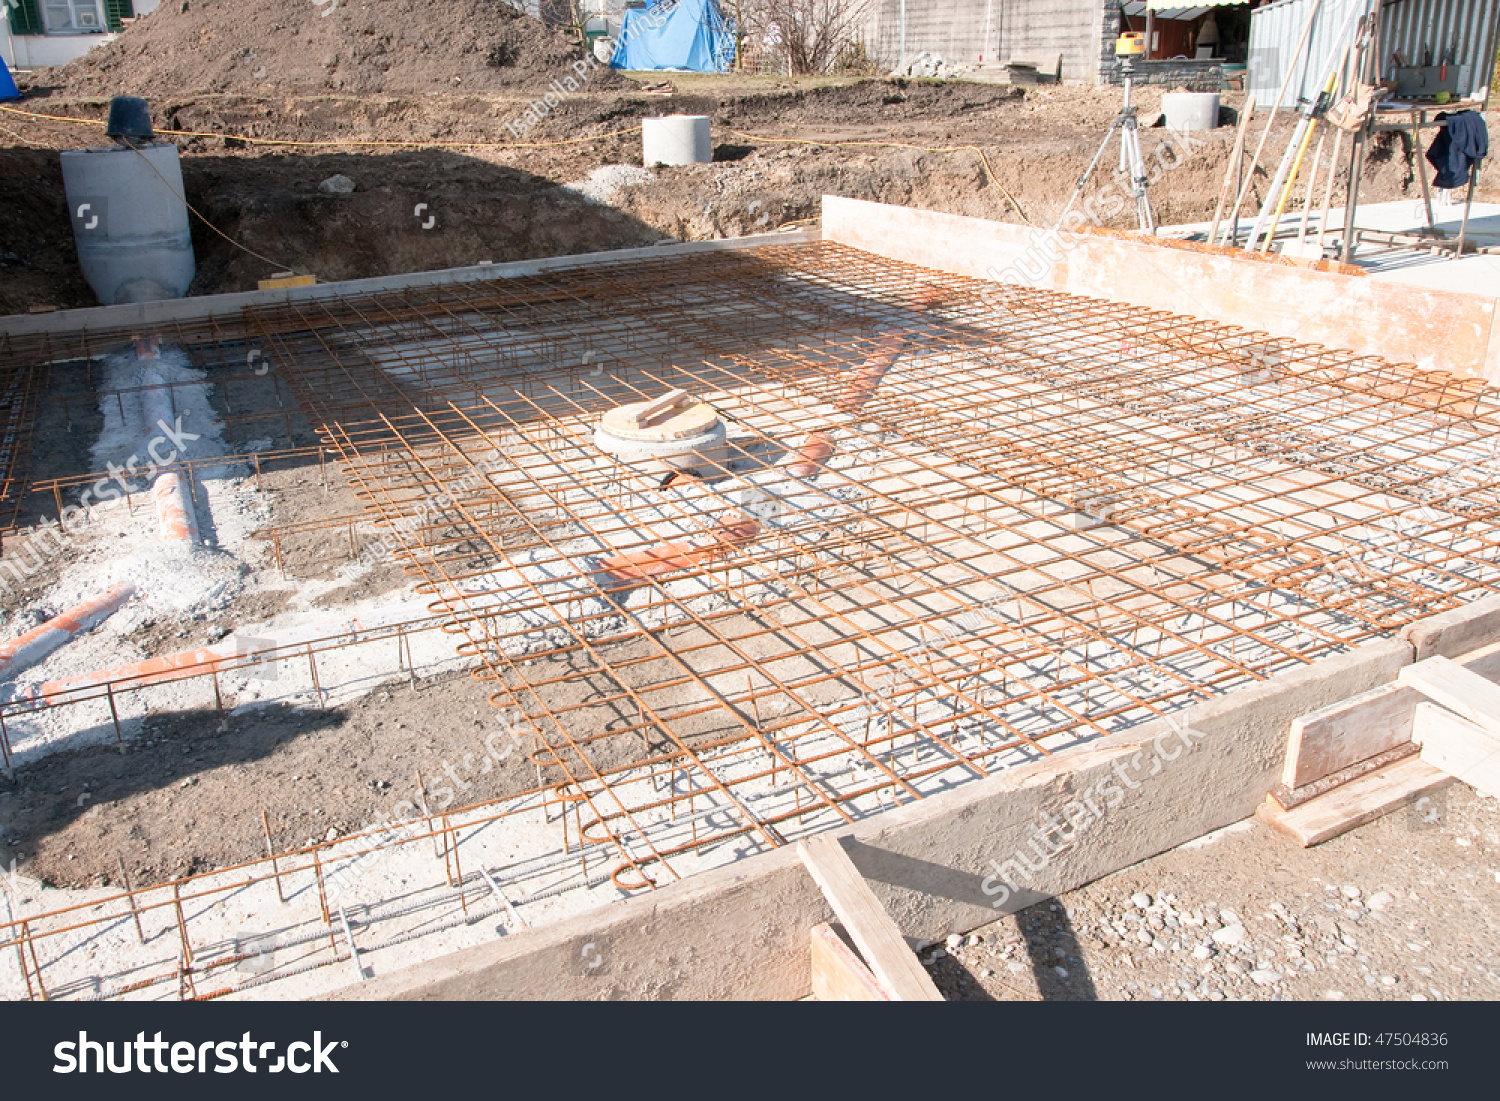 New property home foundation construction stock photo for New home foundation